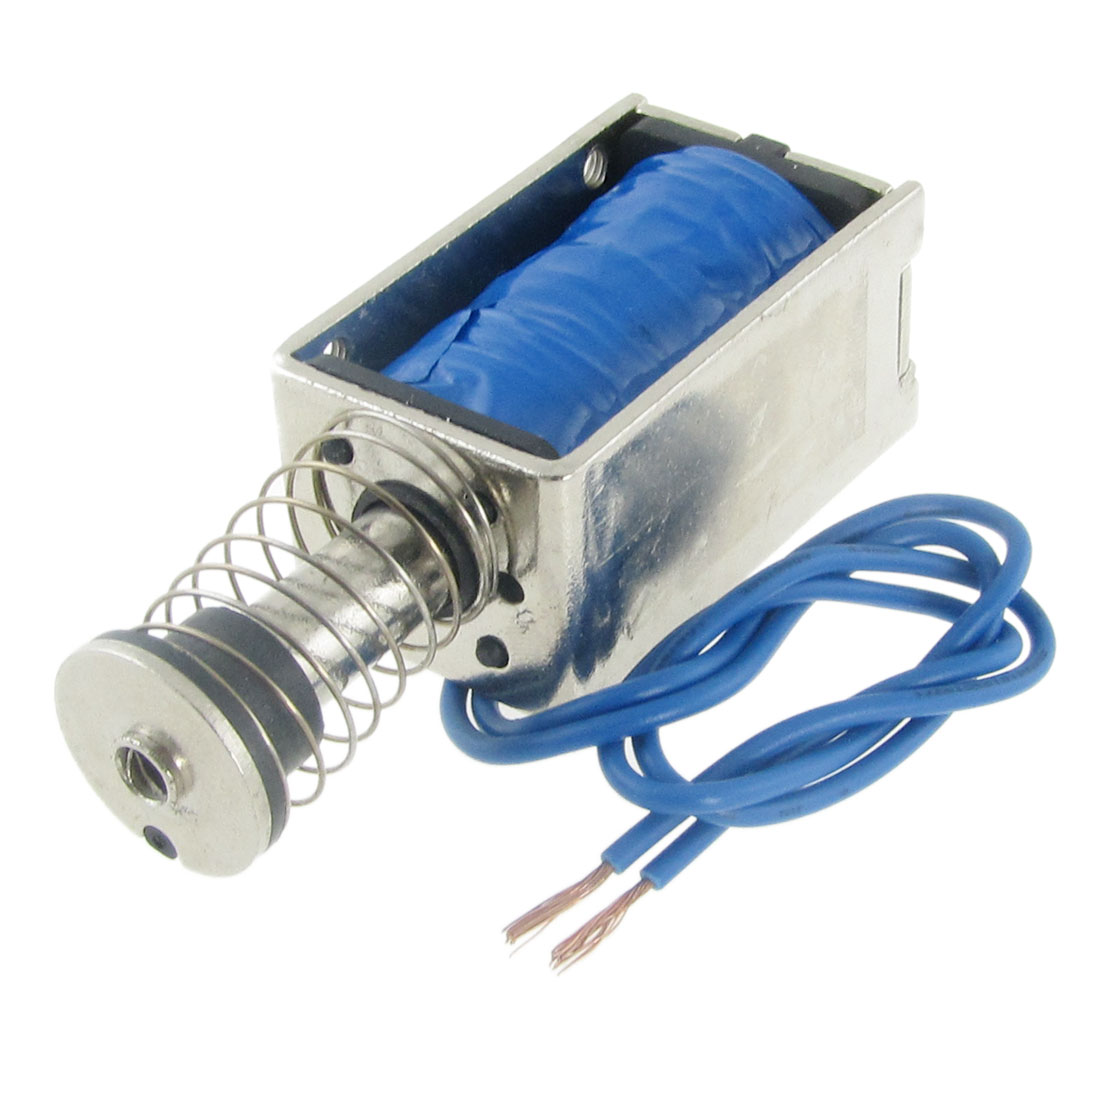 12V DC Direct Current Open Frame 45N Electromagnet Solenoid 10mm Stroke